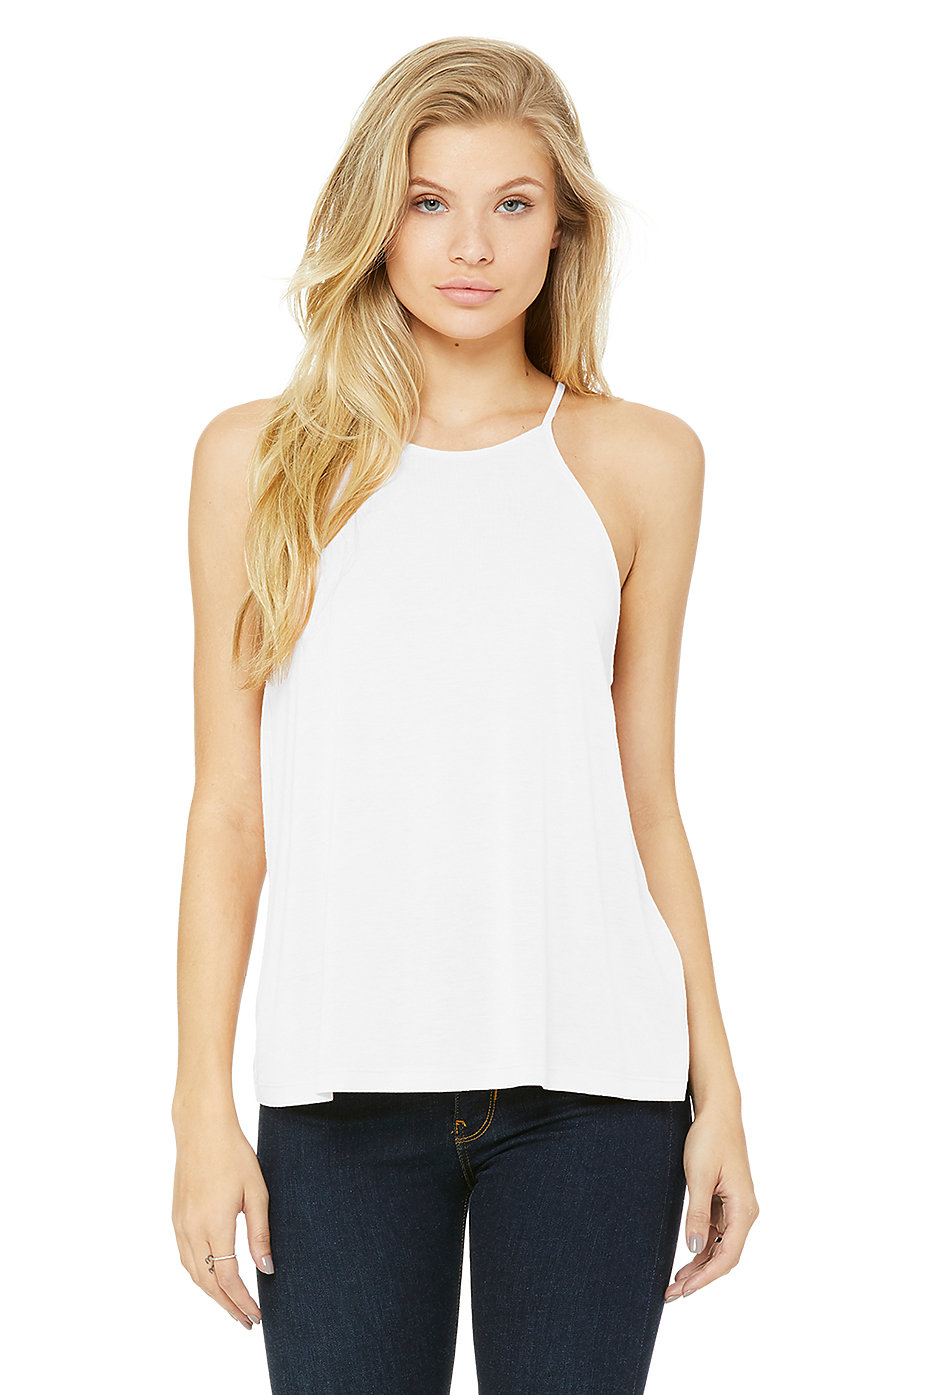 18aaffdba1 High Neck Tank Tops | Womens Tank Tops | Wholesale Tank Tops | Fast ...